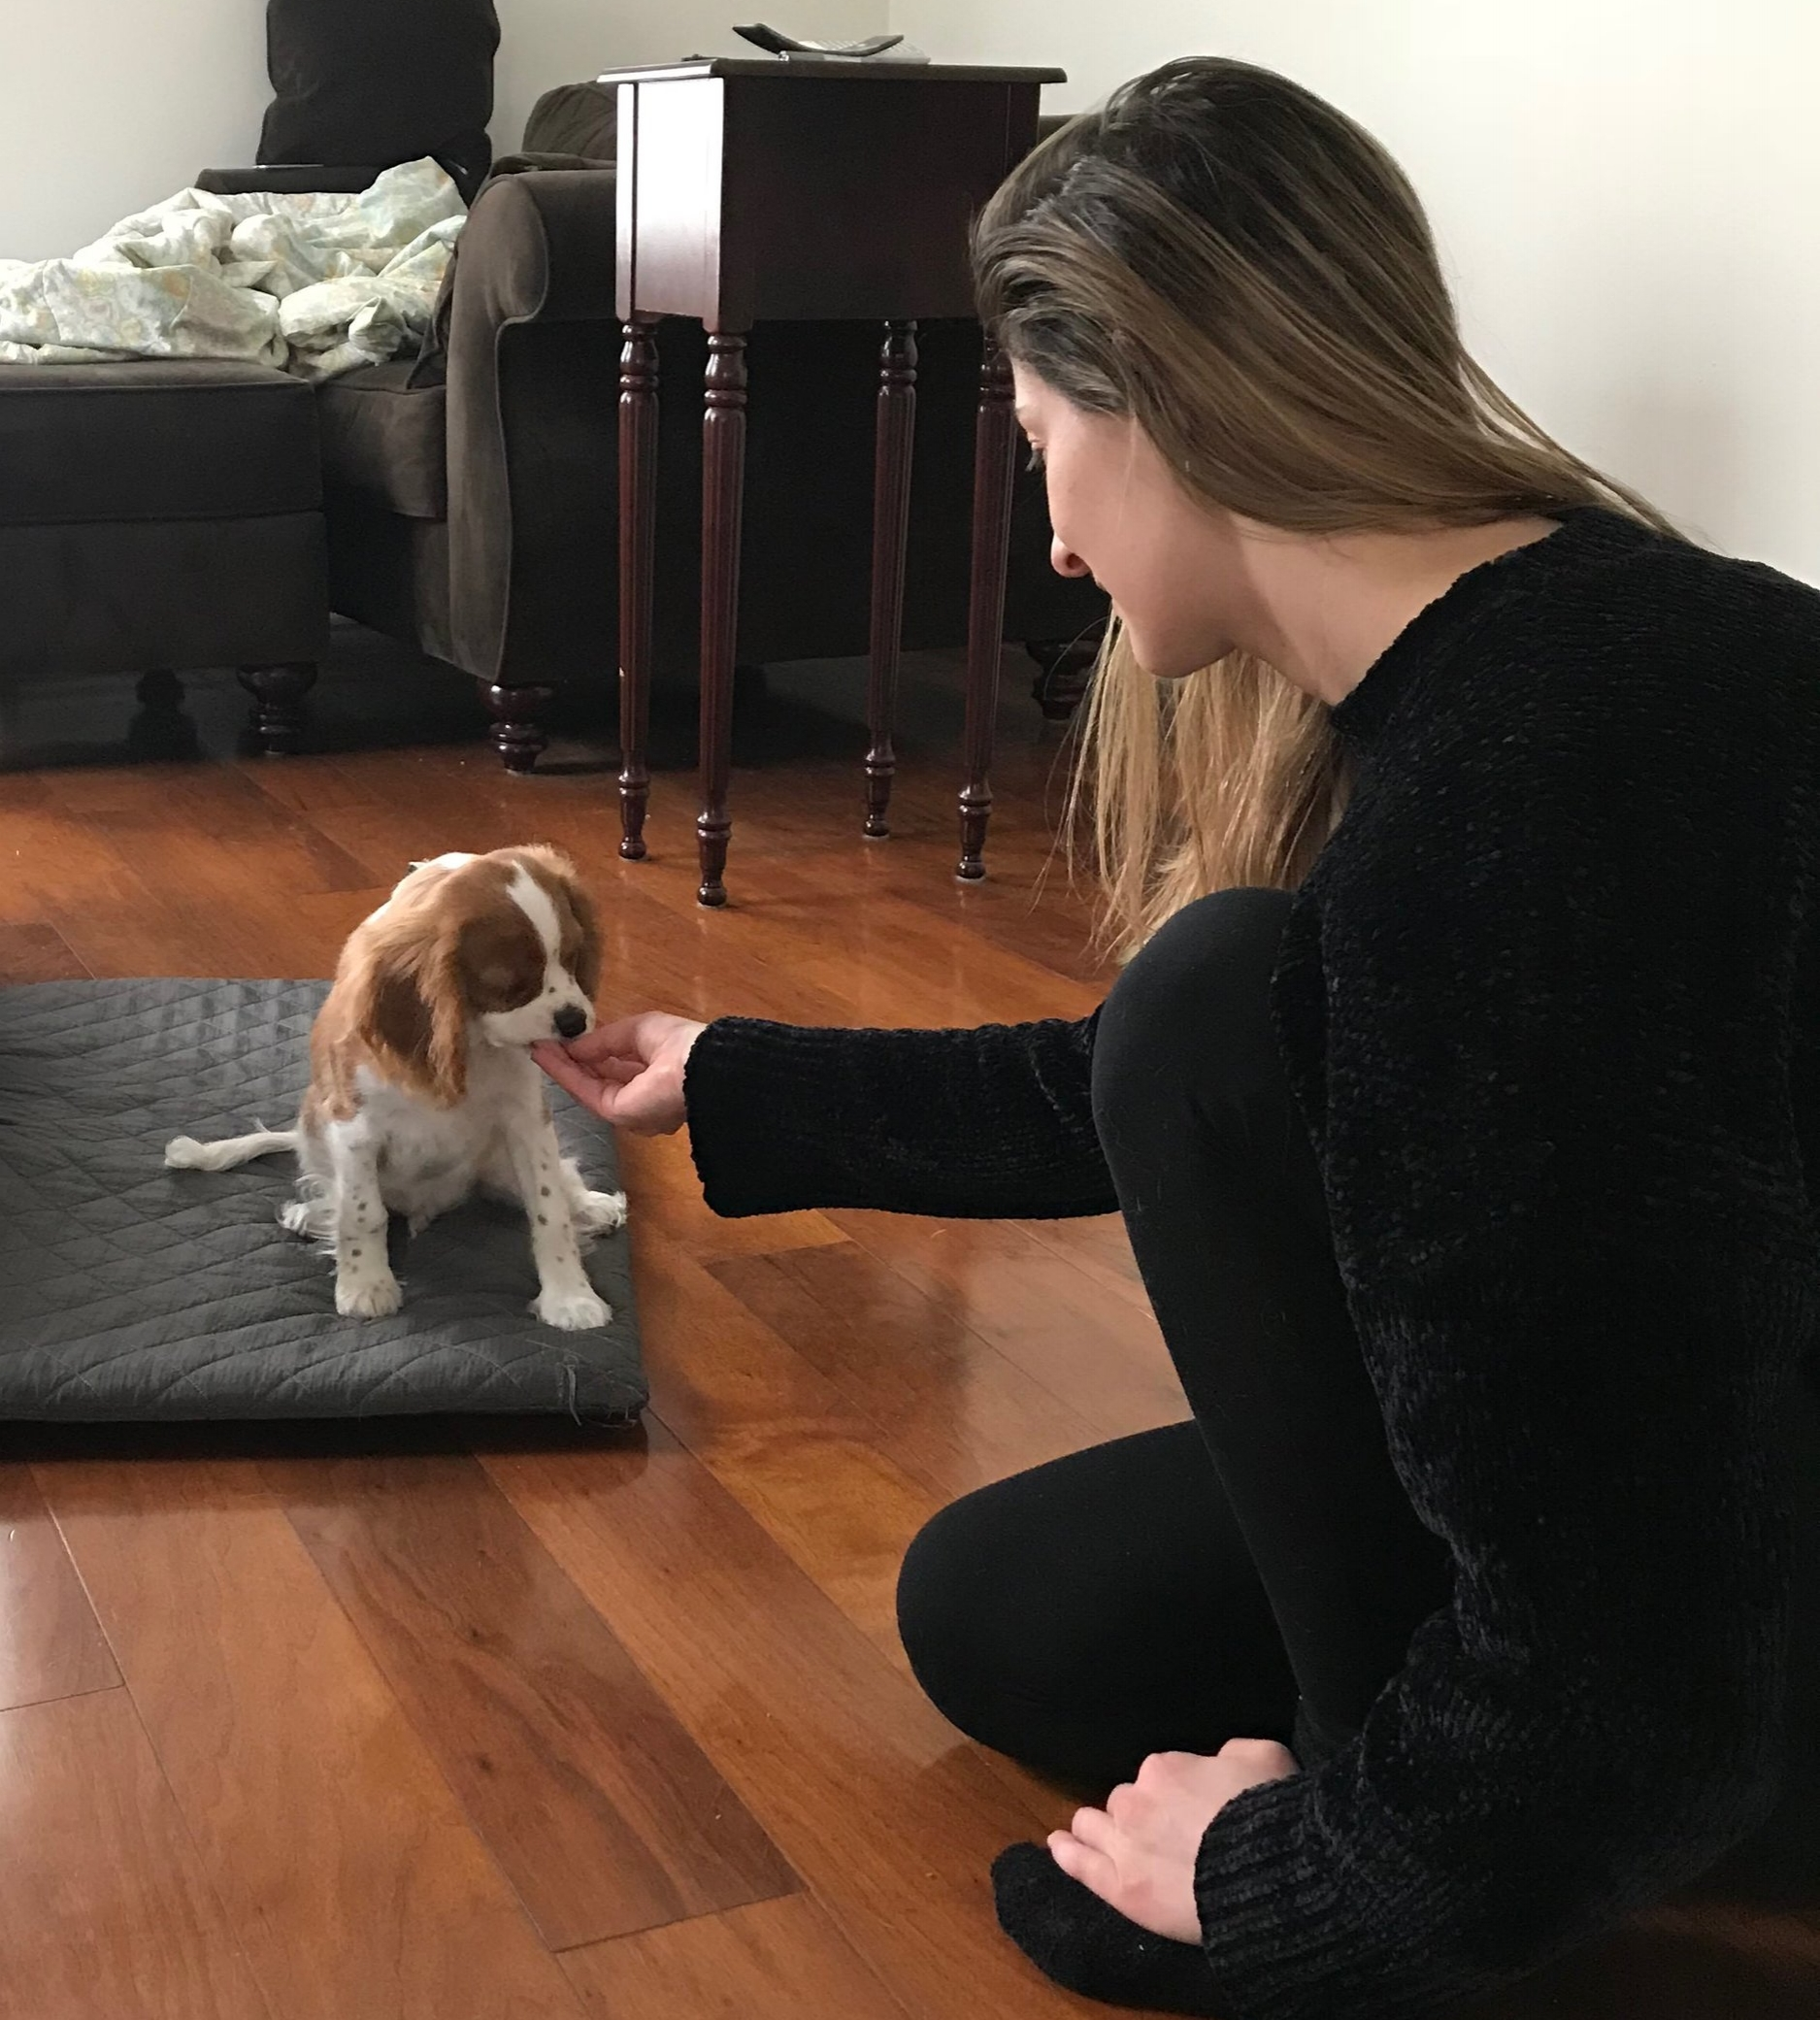 The best dog trainer in Los Angeles offering affordable private puppy training classes in Los Angeles.